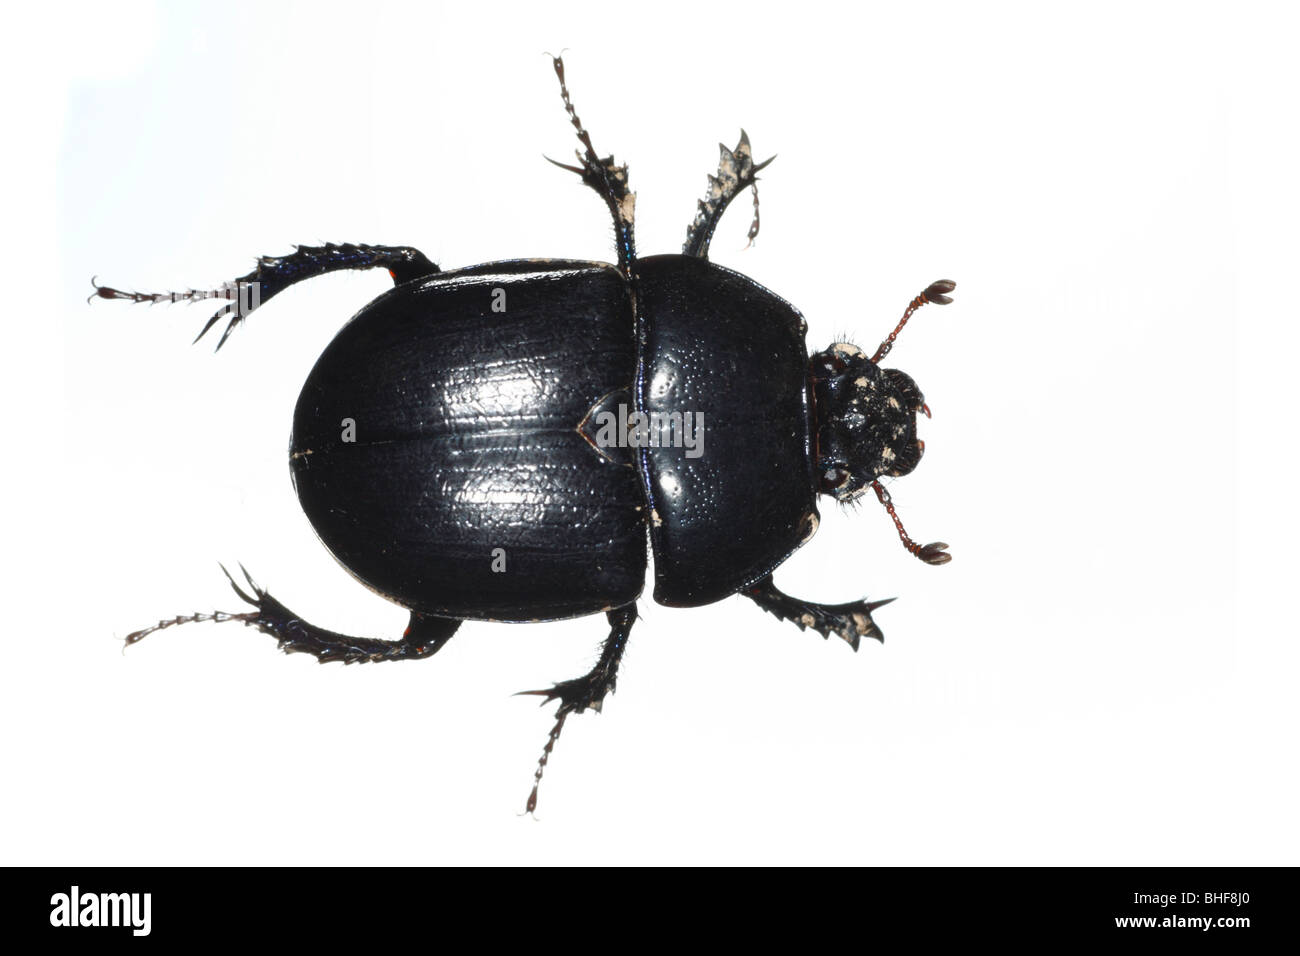 Dor Beetle (Geotrupes stercorarius). Live insect photographed against a white background on a portable studio. - Stock Image